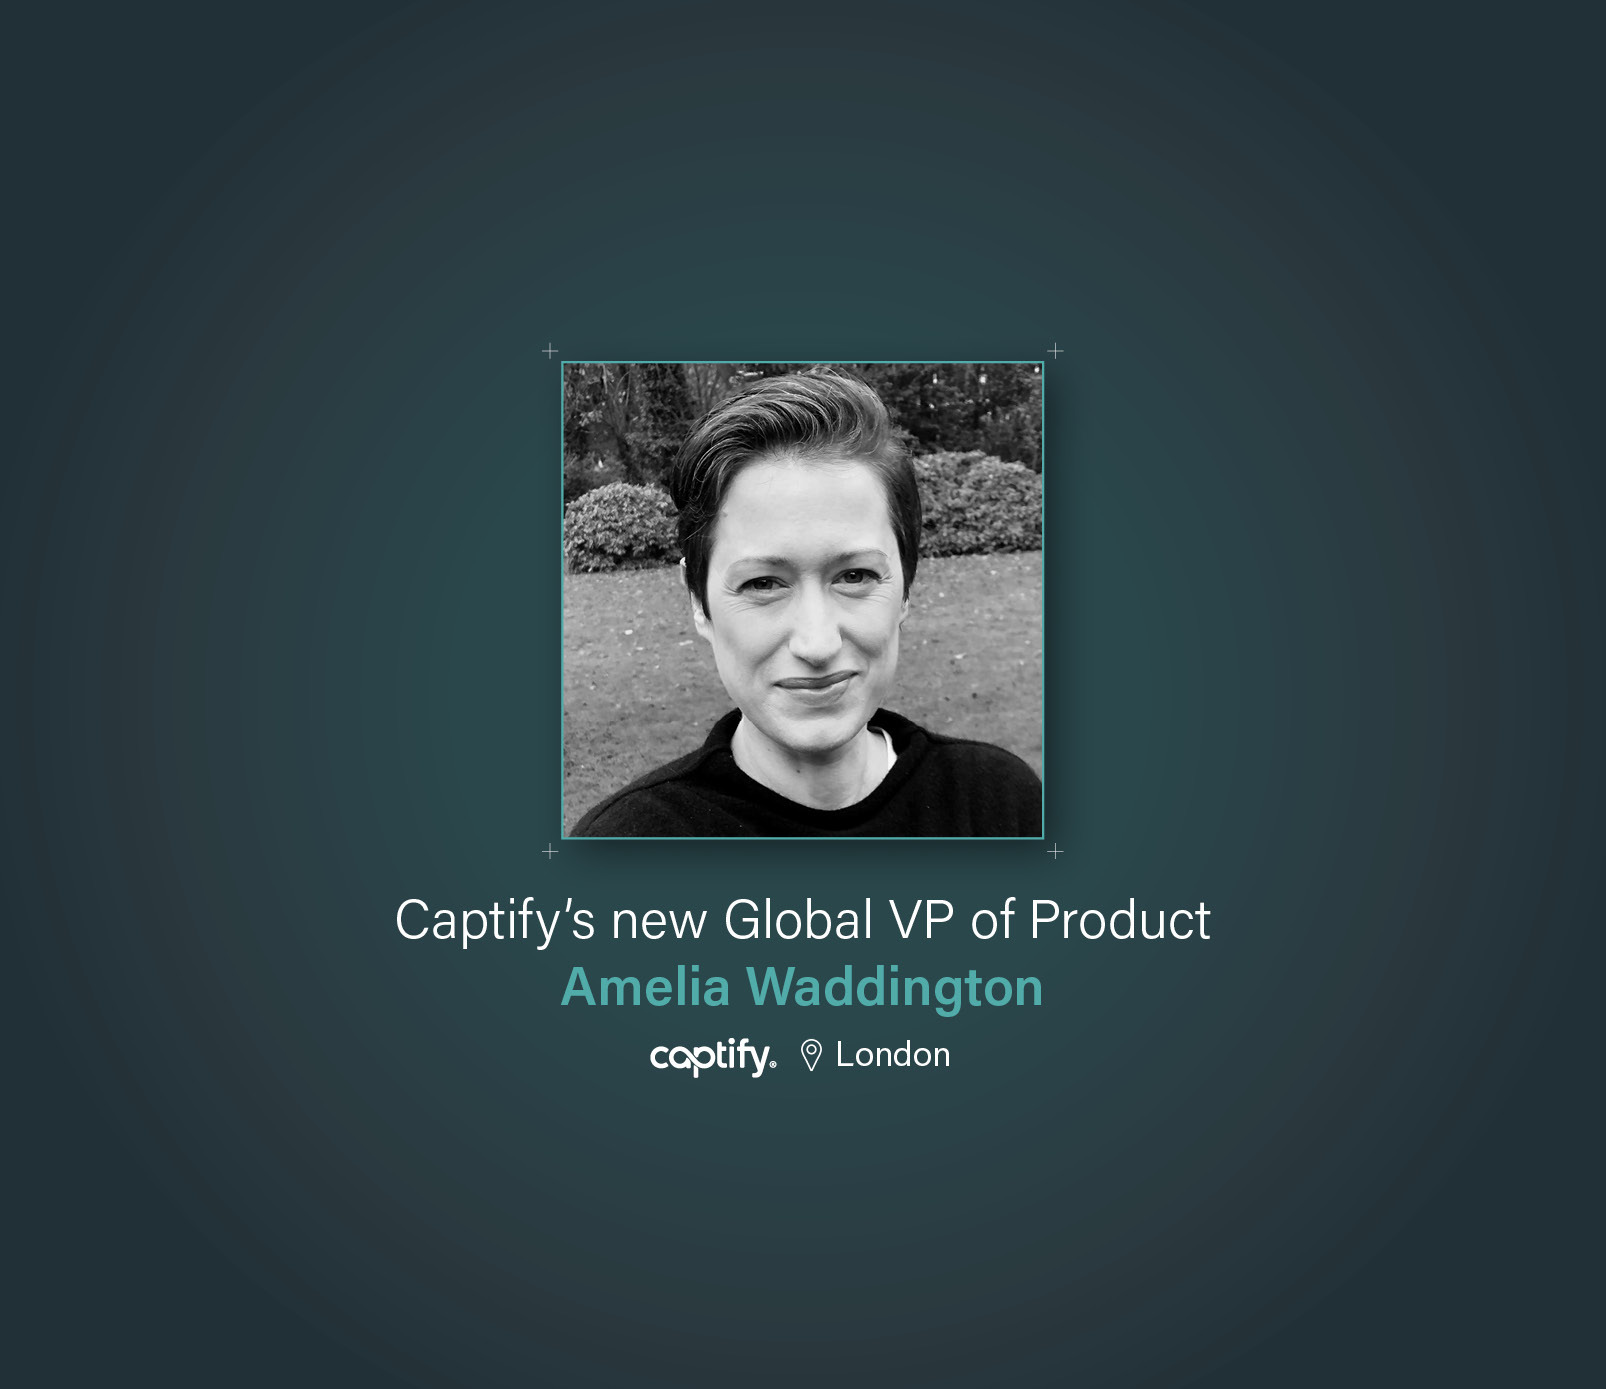 Former LiveRamp Executive Amelia Waddington Joins Search Intelligence Company Captify as Global VP of Product